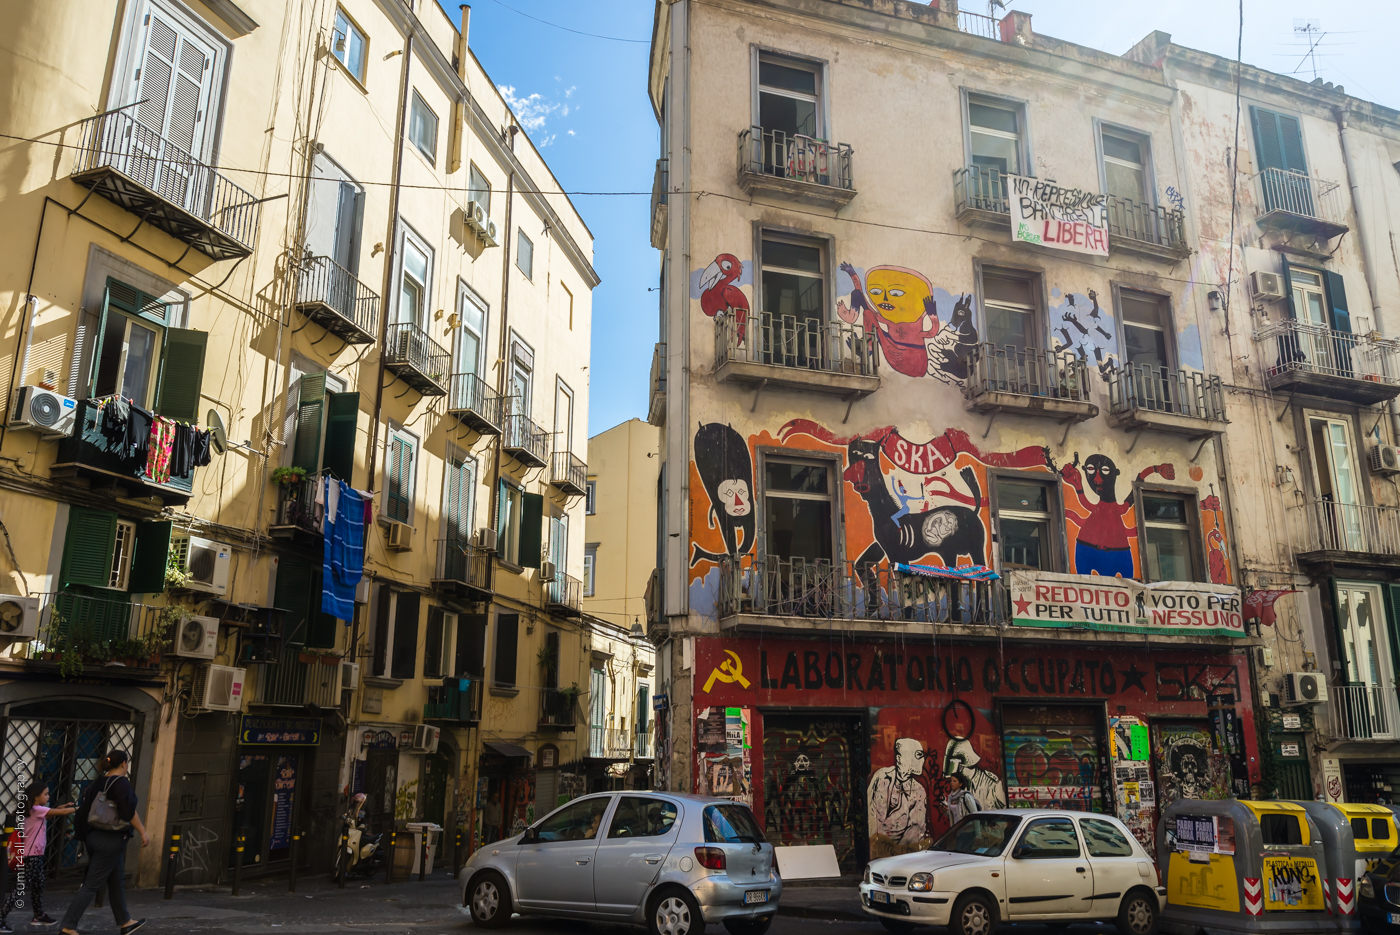 Graffiti on Buildings in Naples, Italy